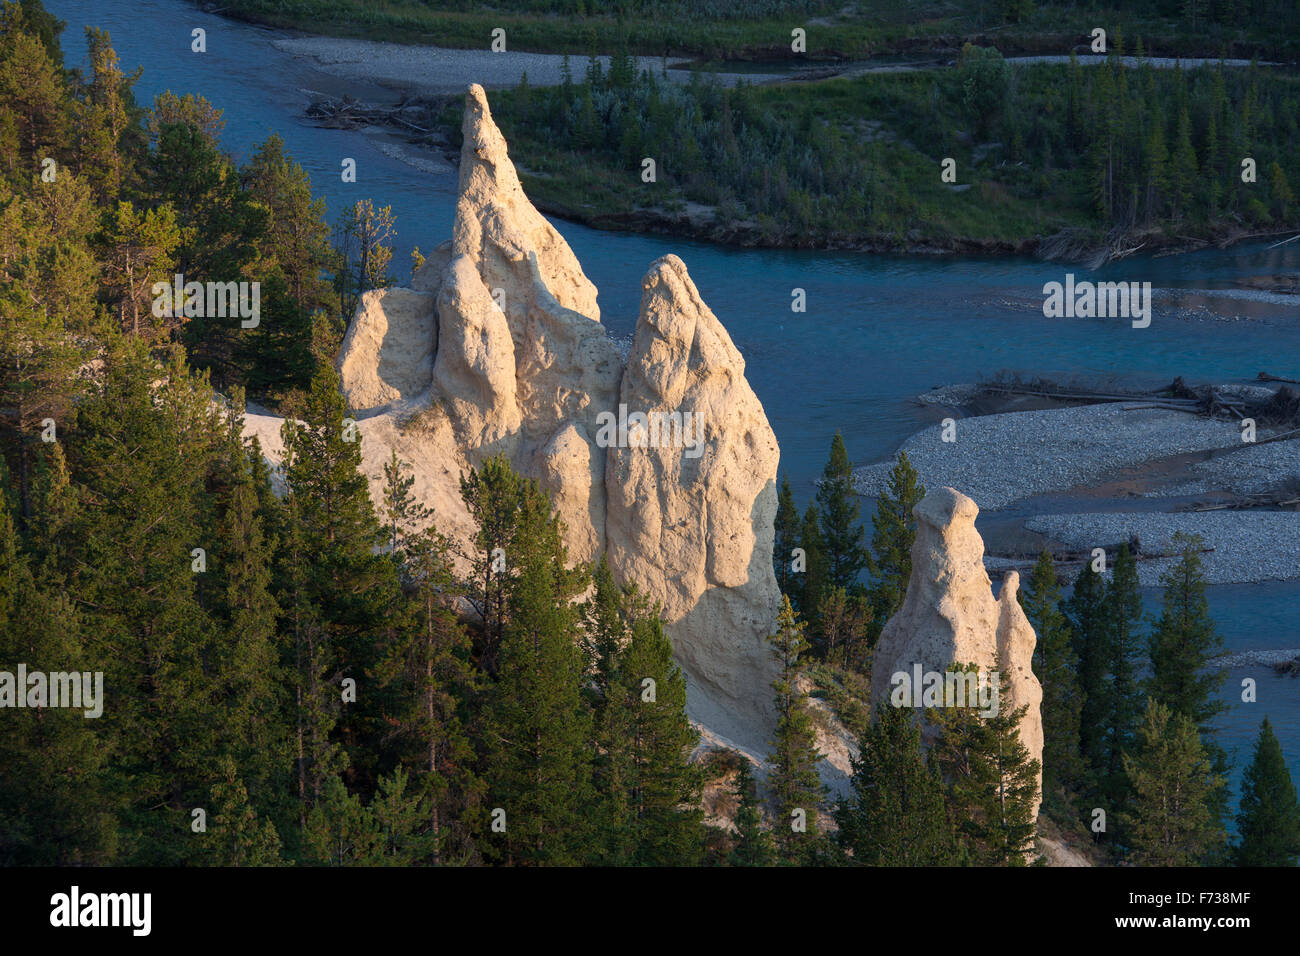 Earth pyramids / Hoodoos in the Bow Valley, Banff National Park, Alberta, Rocky Mountains, Canada - Stock Image